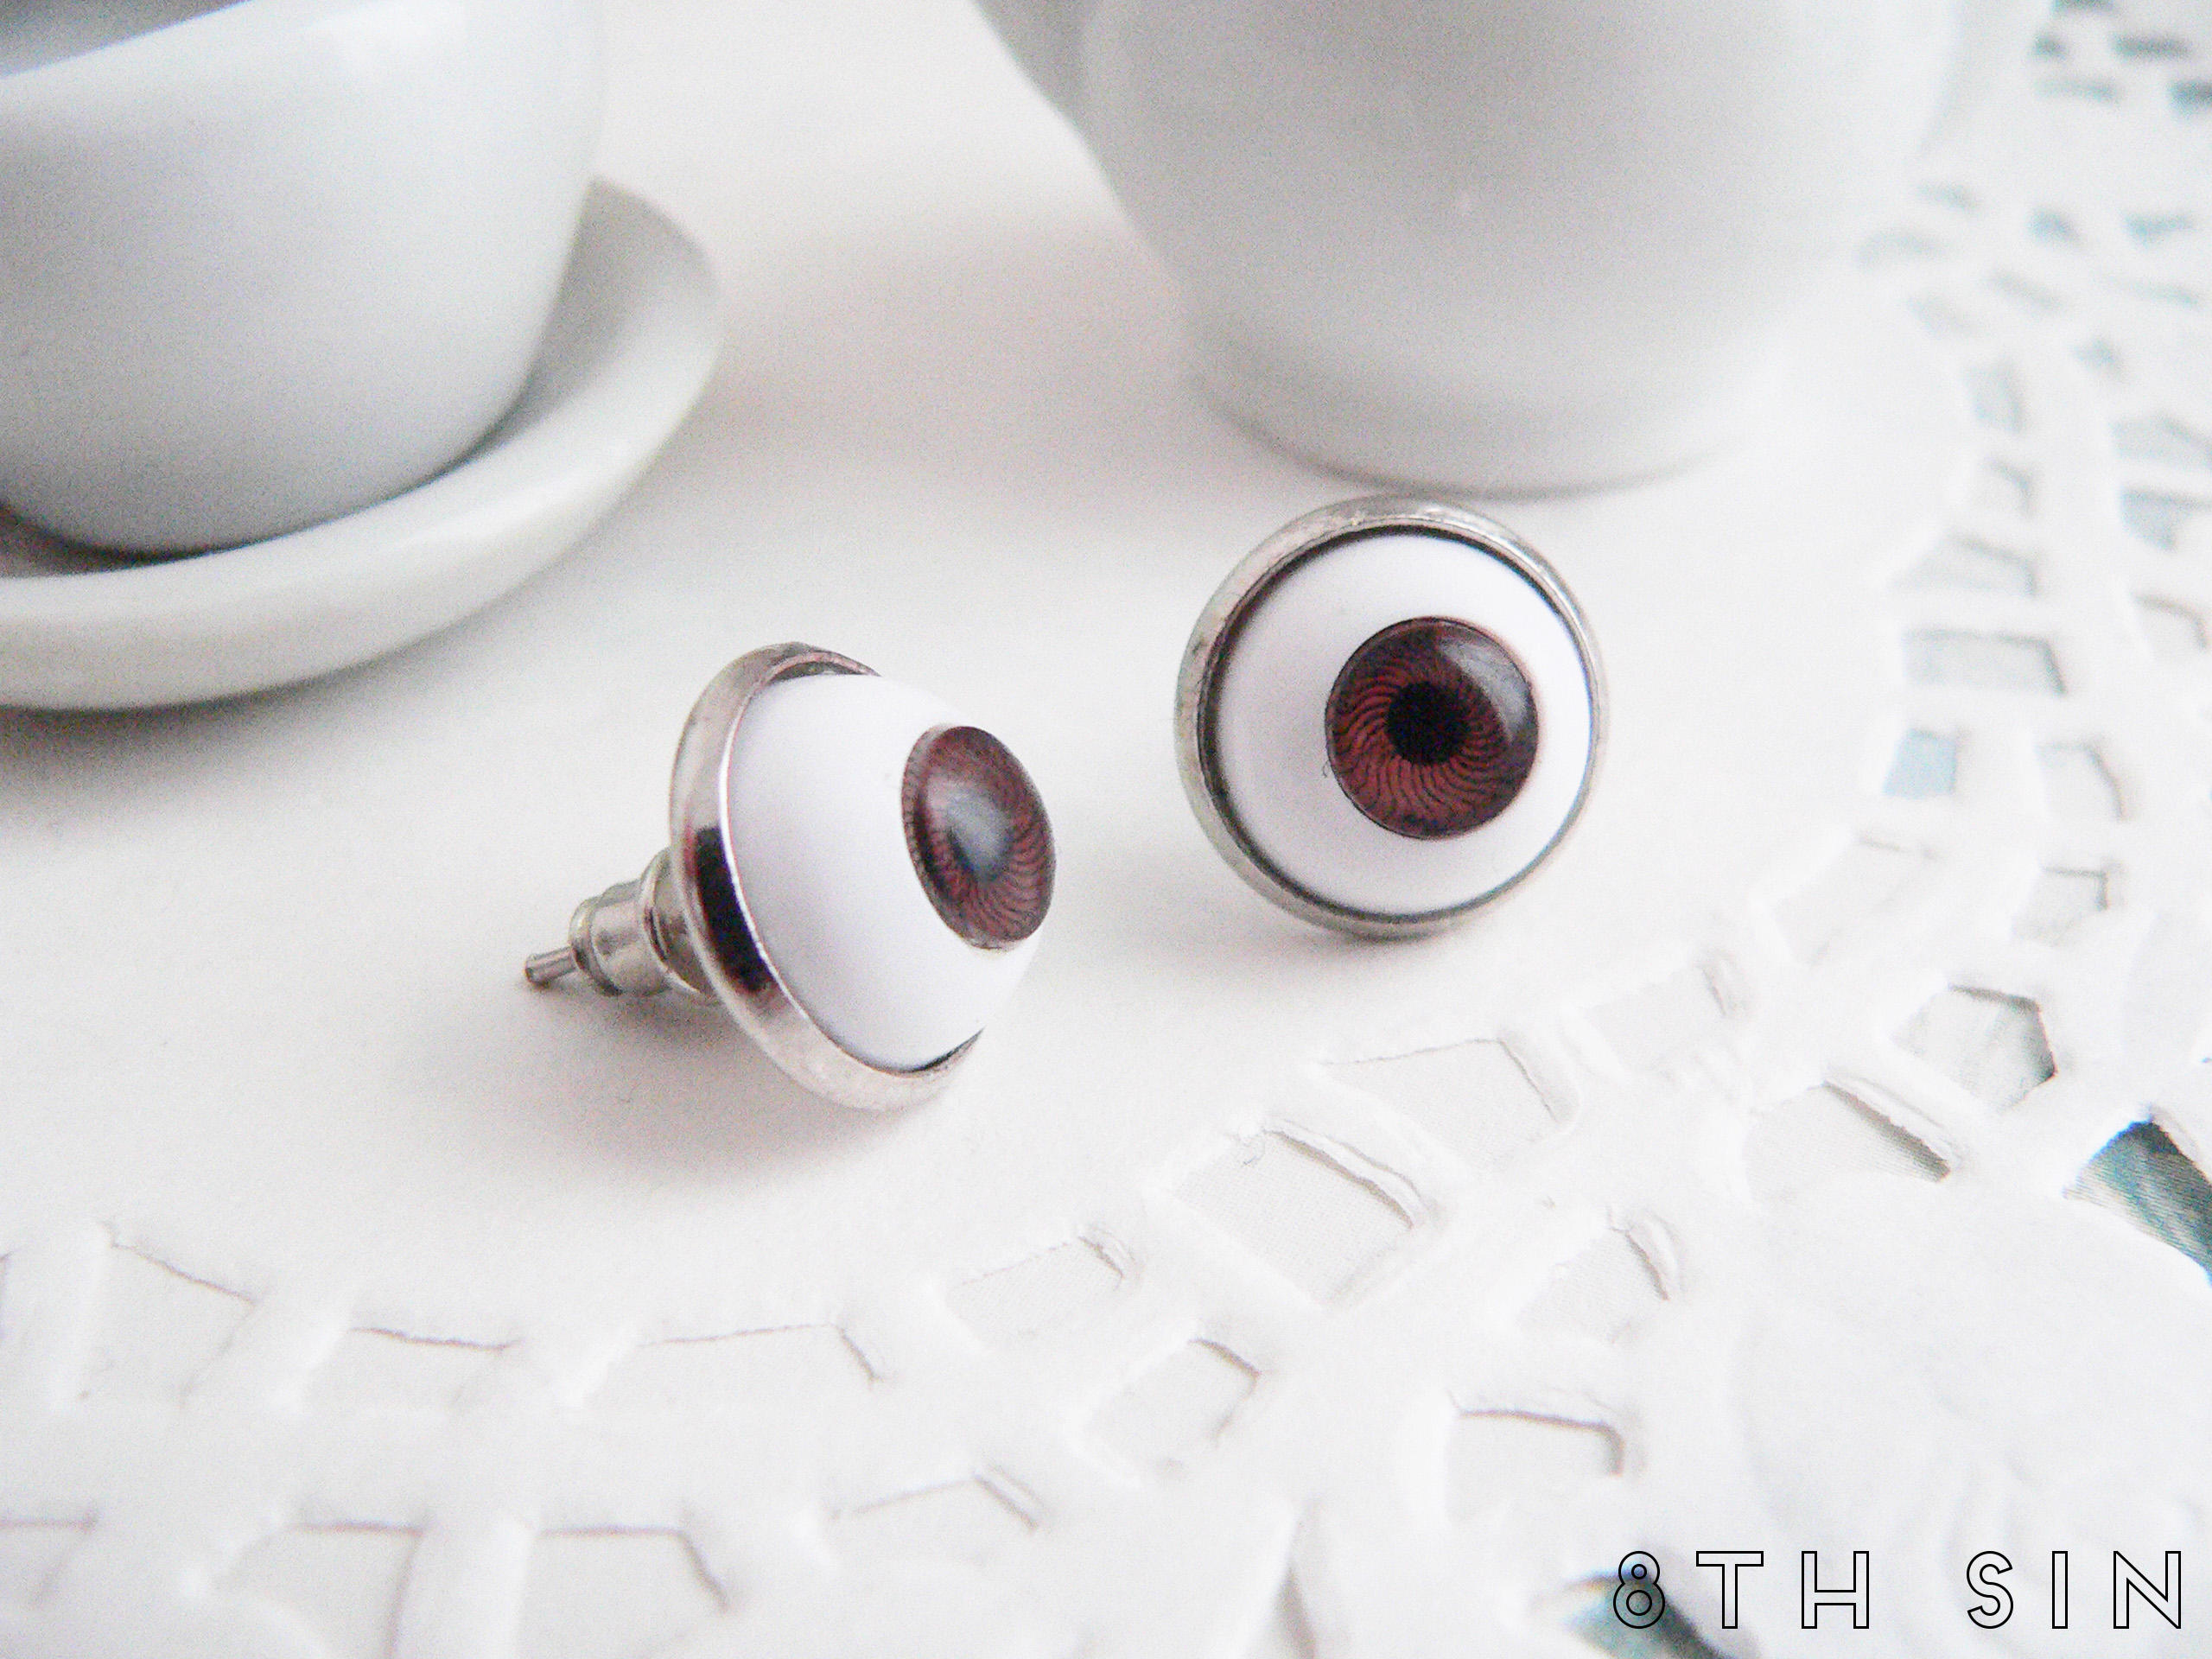 antique silver and brown eyeball earrings